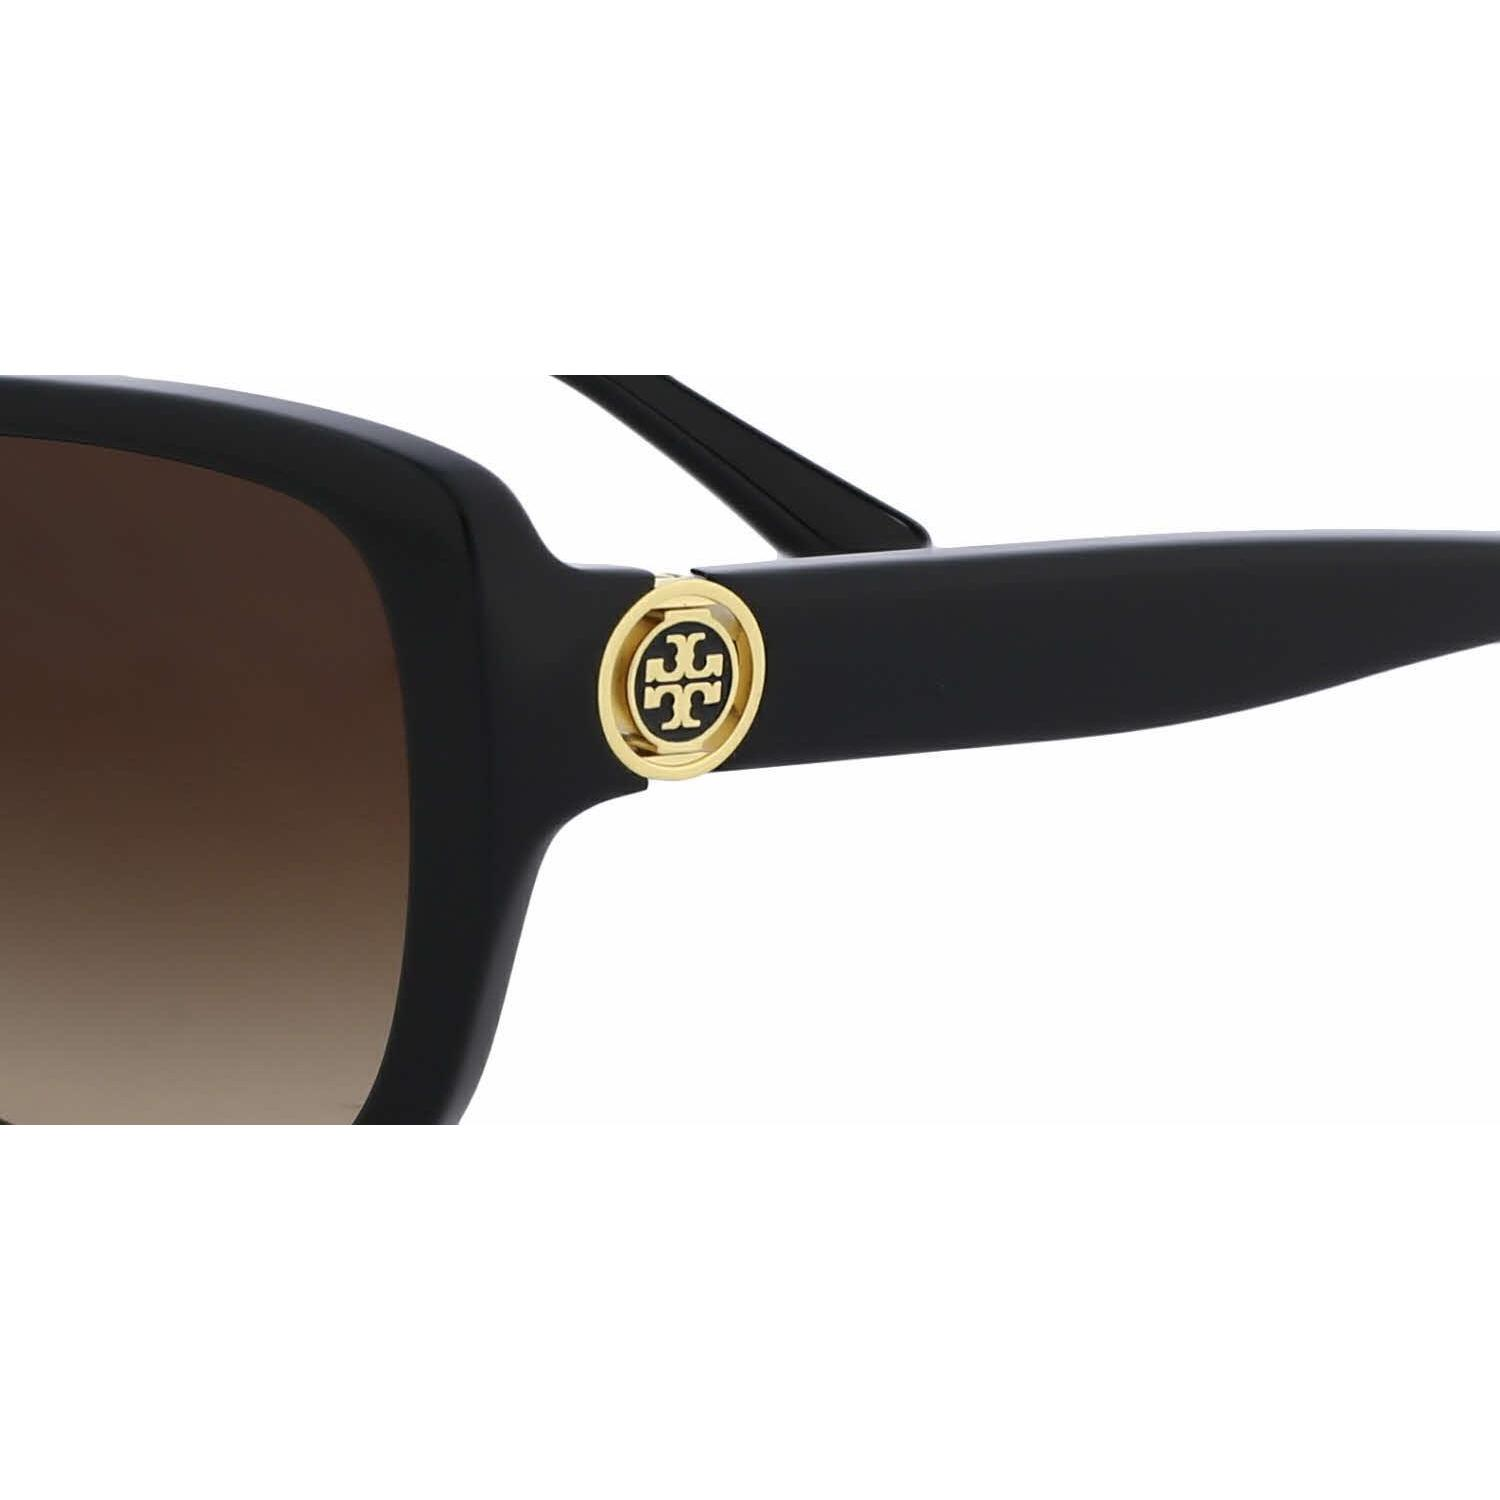 b98a453bfd5c Shop Tory Burch Women TY7086 131213 Black Plastic Rectangle Sunglasses - Free  Shipping Today - Overstock - 13319177